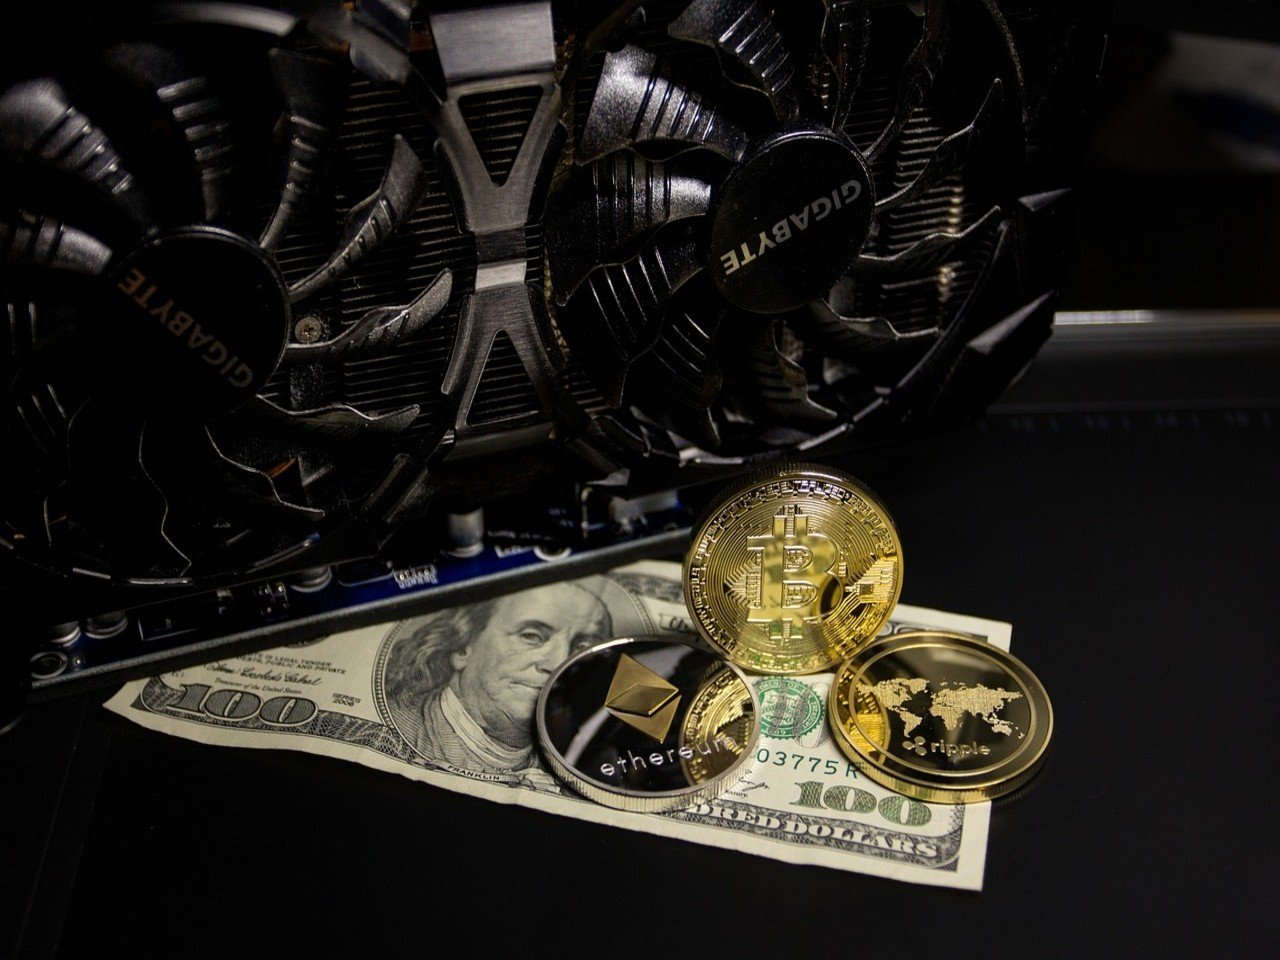 Claymore Cryptonote Gpu Miner the best cryptocurrency to mine with your cpu/gpu in 2020